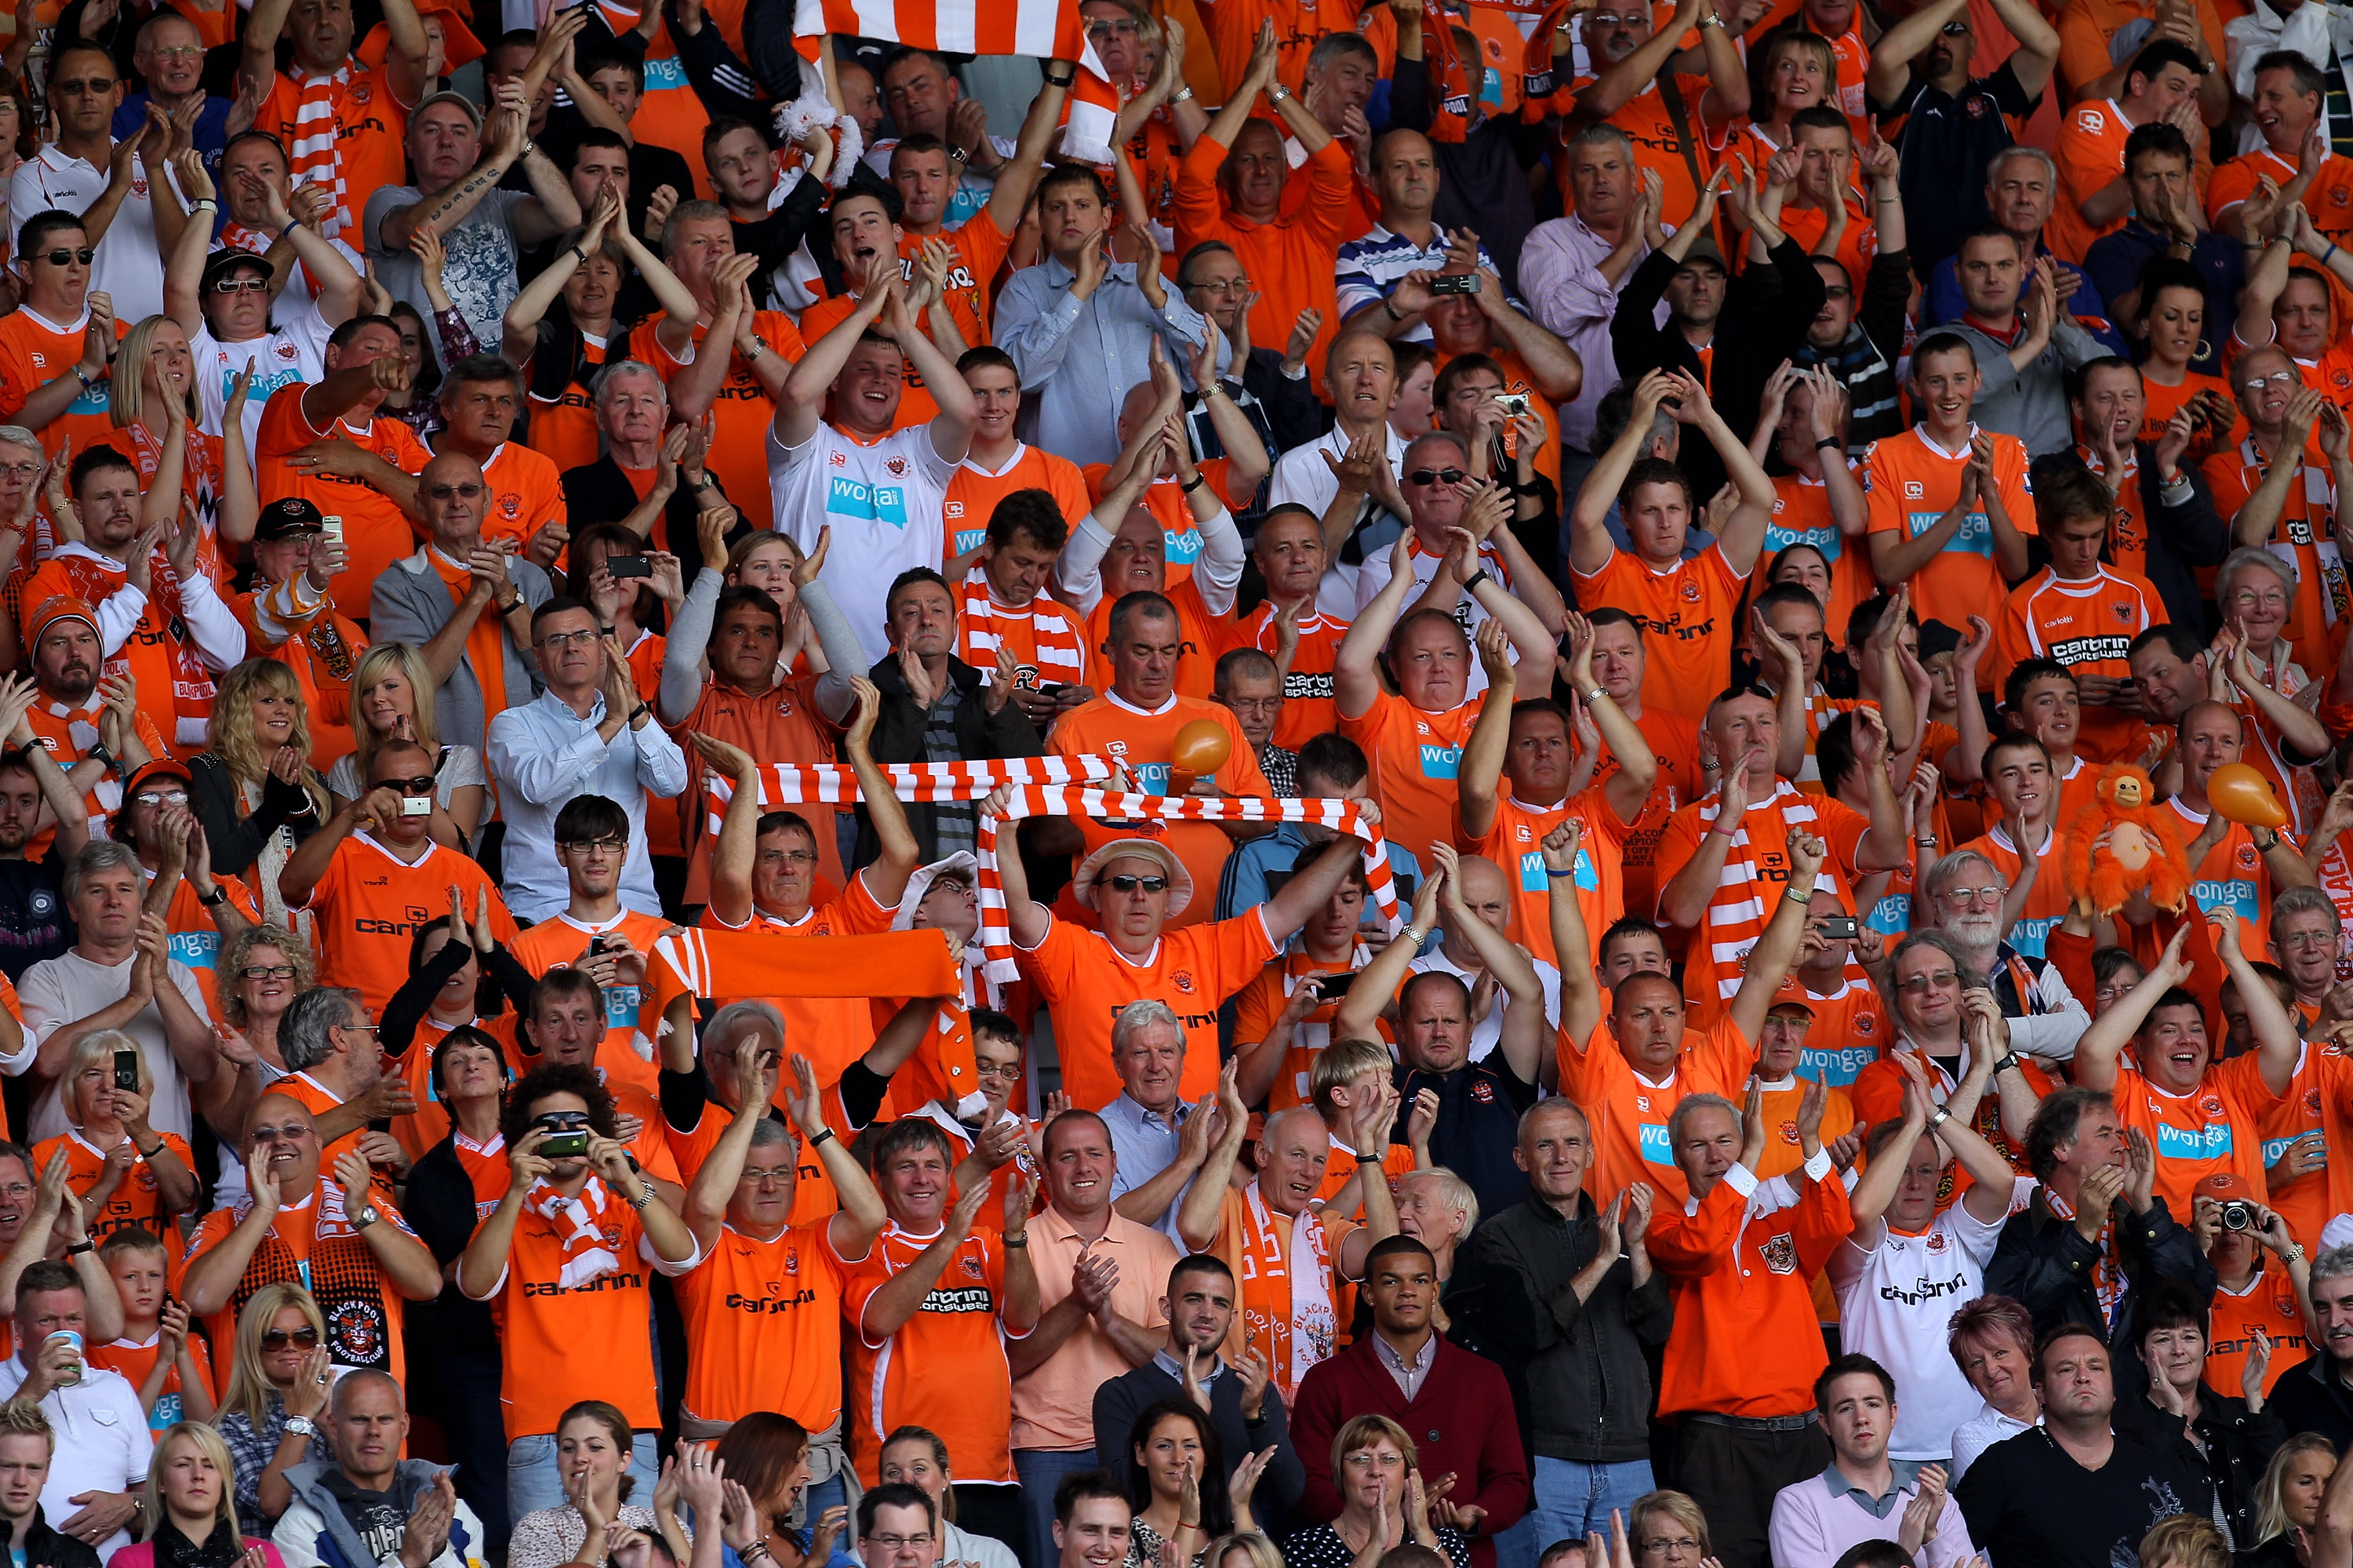 WIGAN, ENGLAND - AUGUST 14:  Blackpool fans show their support during the Barclays Premier League match between Wigan Athletic and Blackpool at the DW Stadium on August 14, 2010 in Wigan, England.  (Photo by Alex Livesey/Getty Images)